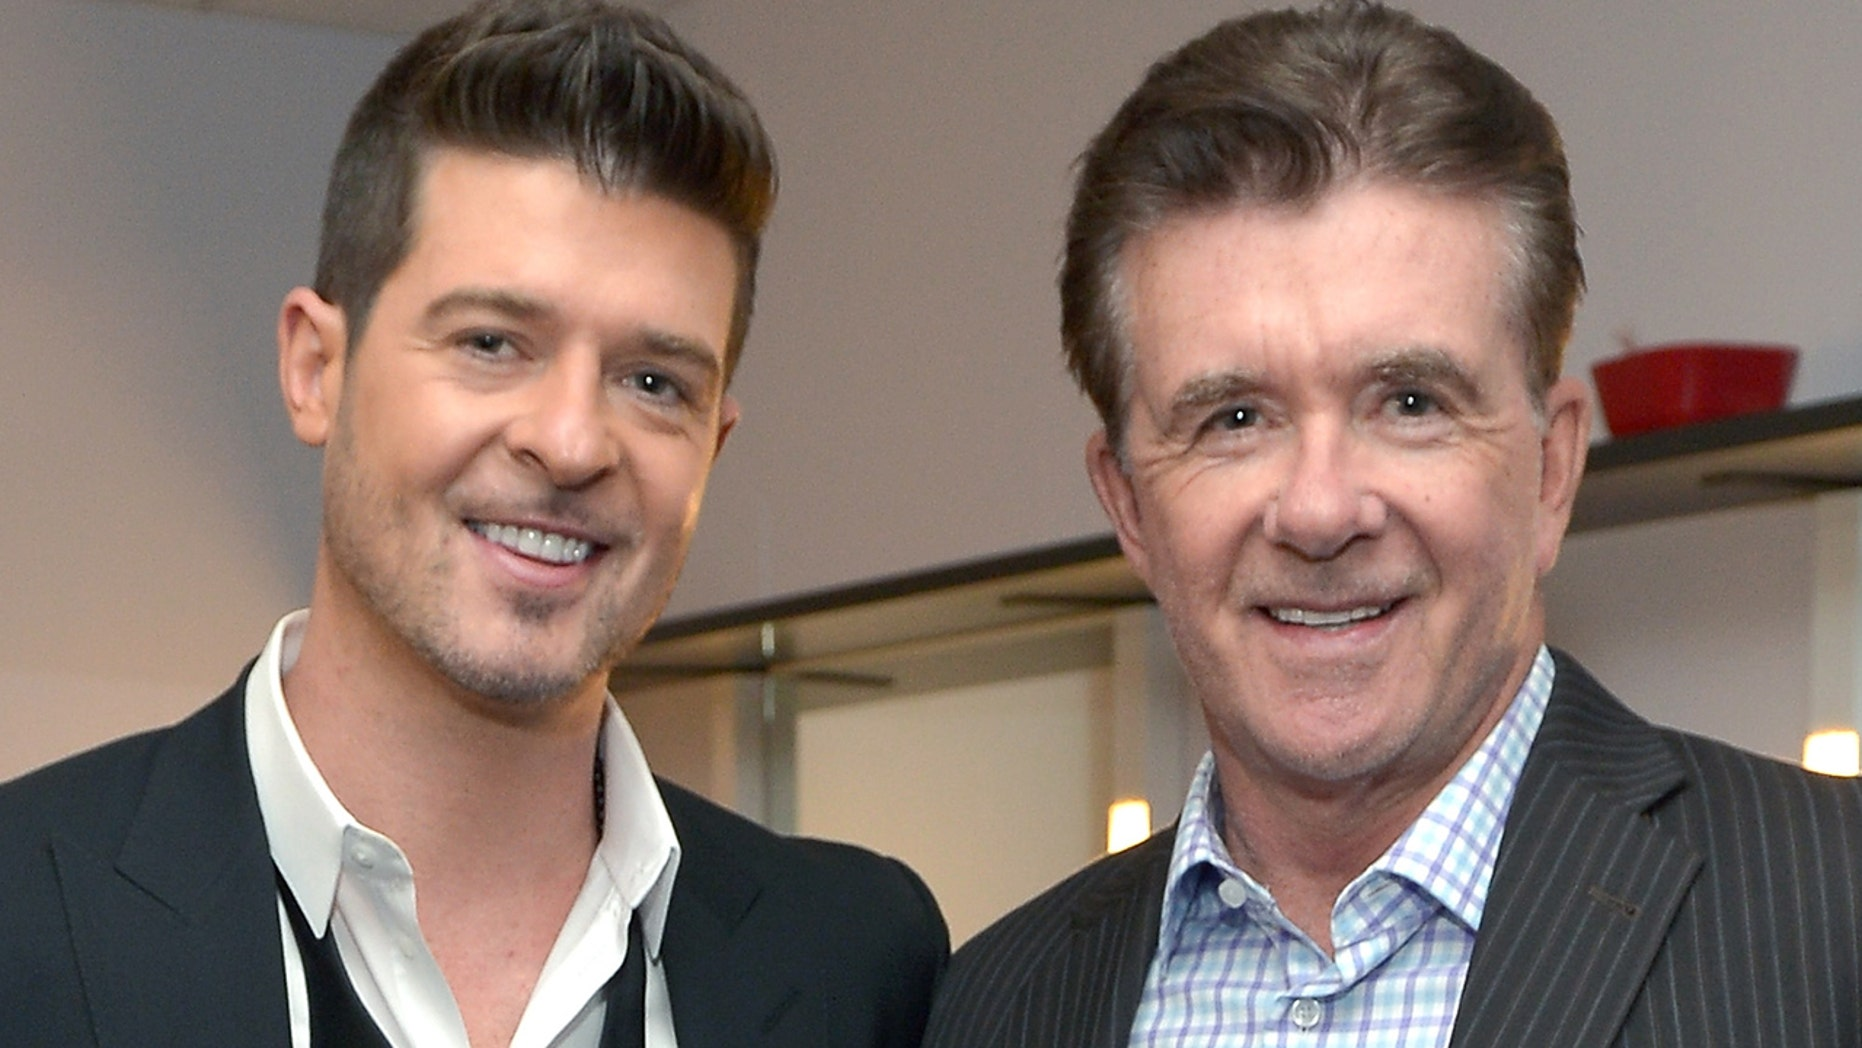 Robin Thicke opened up about losing his father, Alan, in 2016.